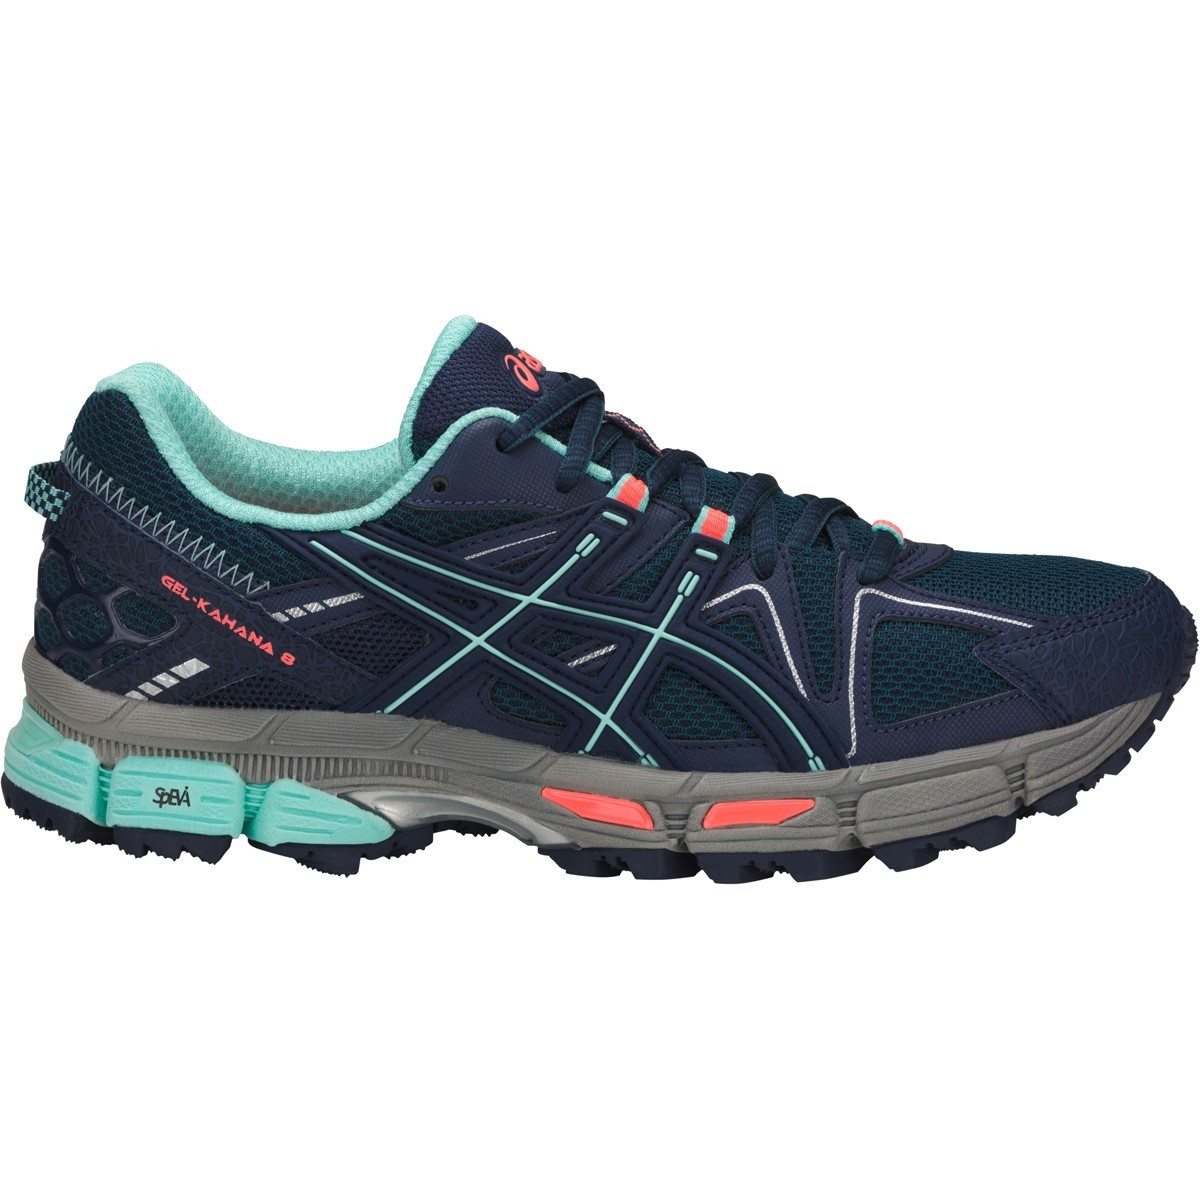 Discount Trail Running Shoes Australia